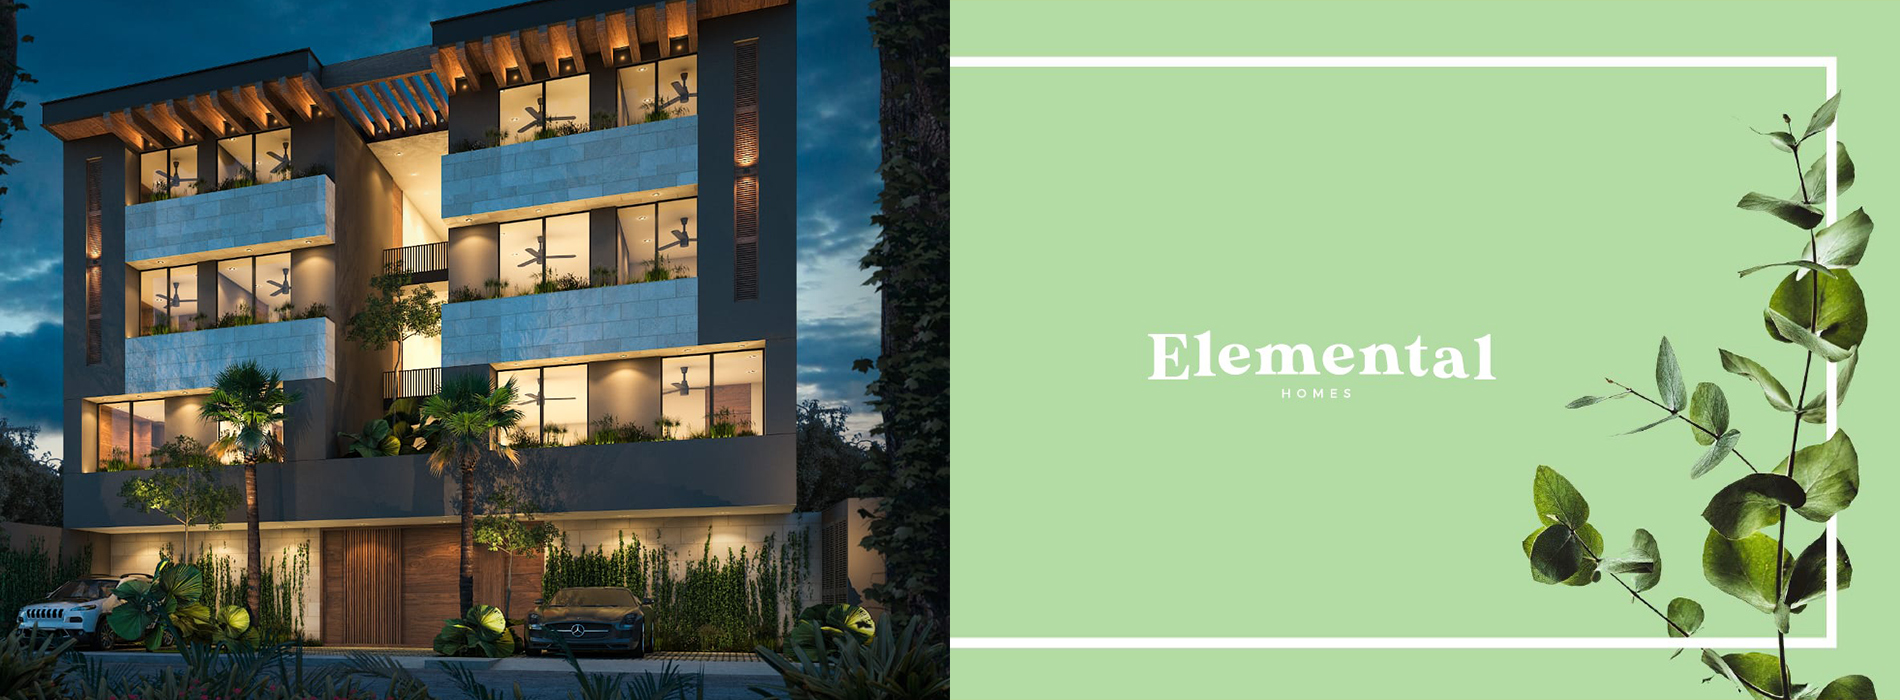 Departamentos Venta Mérida Elemental Homes Goodlers